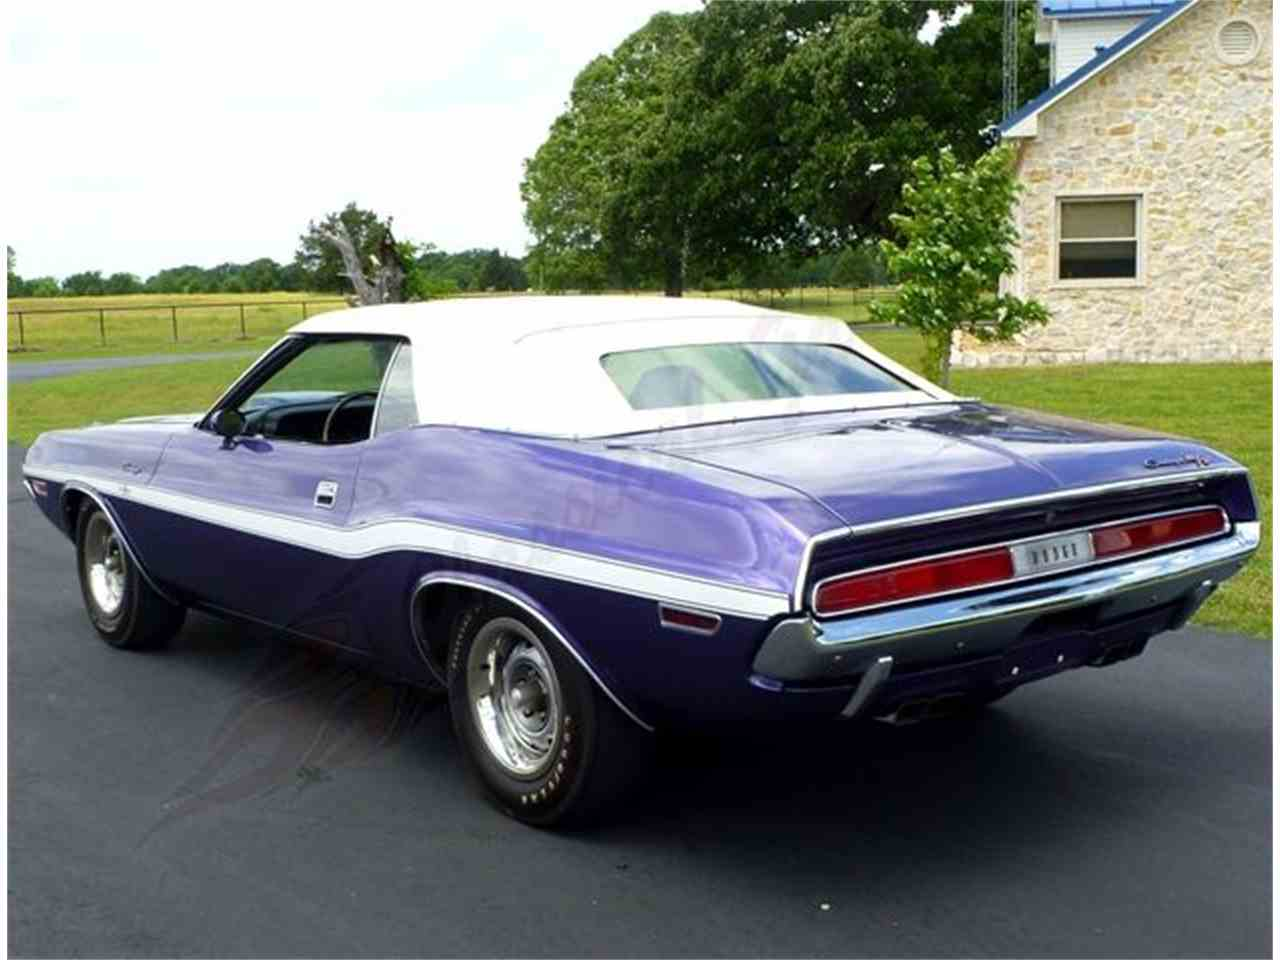 Large Picture of Classic 1970 Dodge CHALLENGER CONVERTIBLE R/T Offered by Classical Gas Enterprises - BVHV